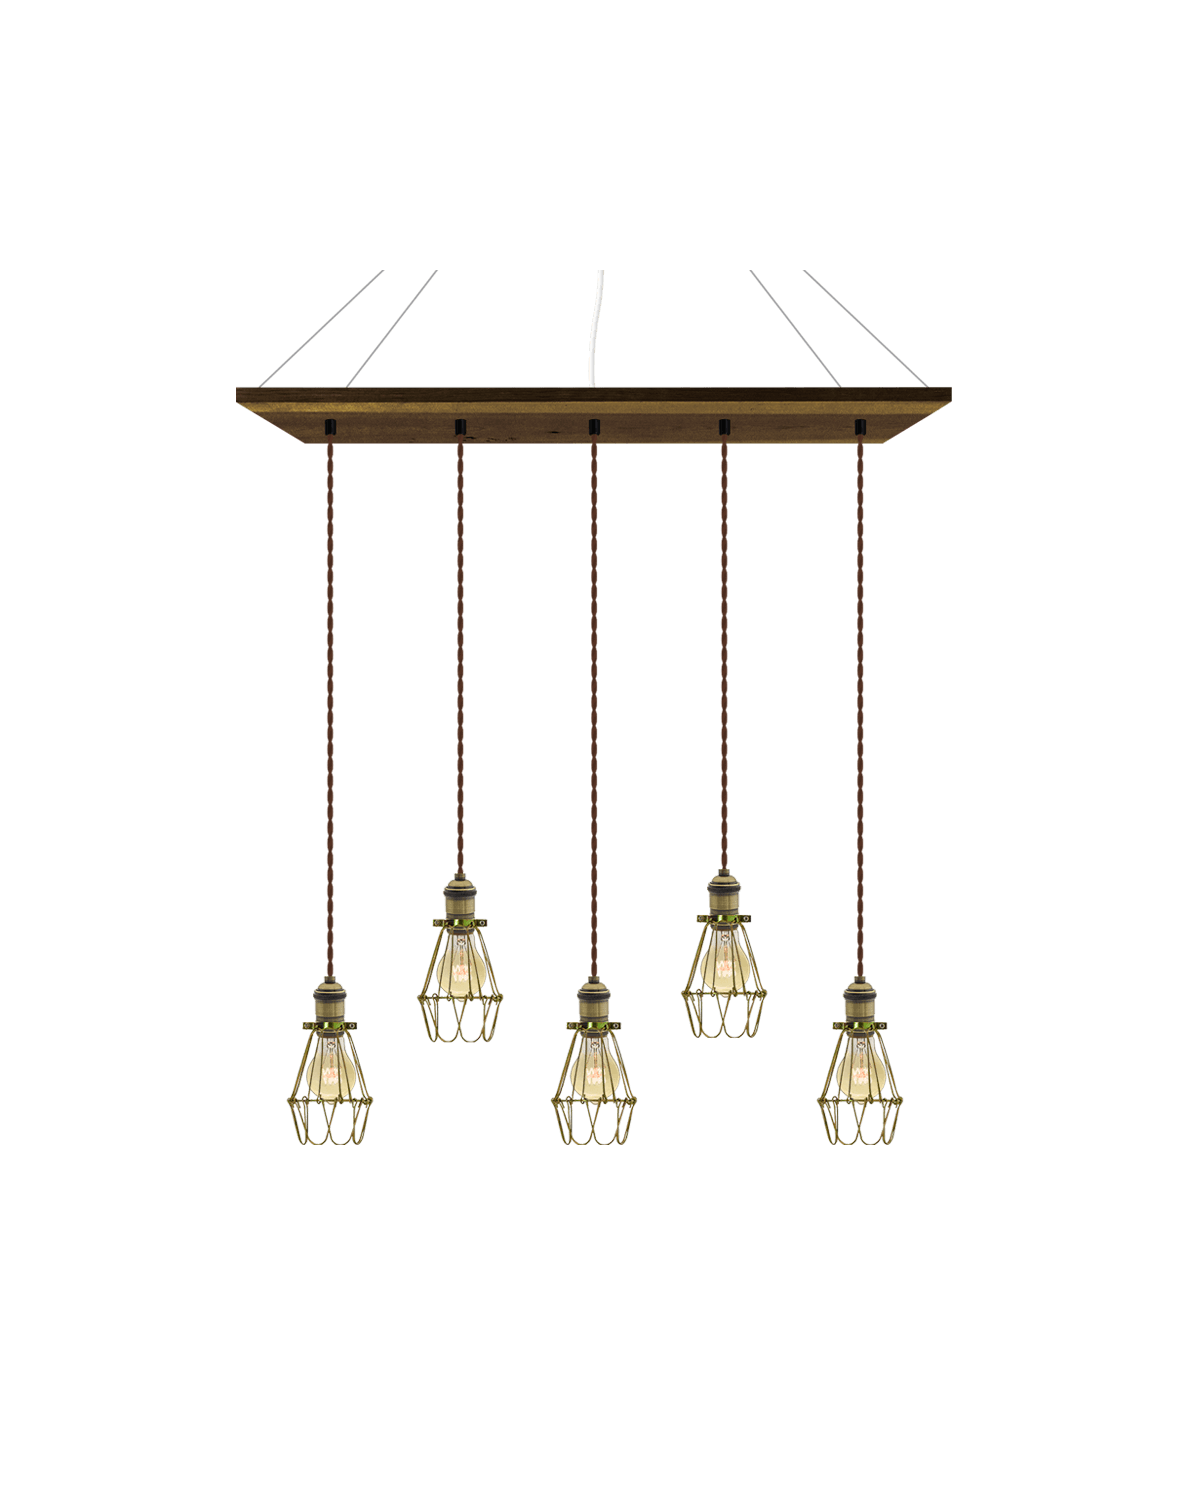 "35"" x 9"" Wood Chandelier: Walnut, Brown, and Brass Cages Hangout Lighting"